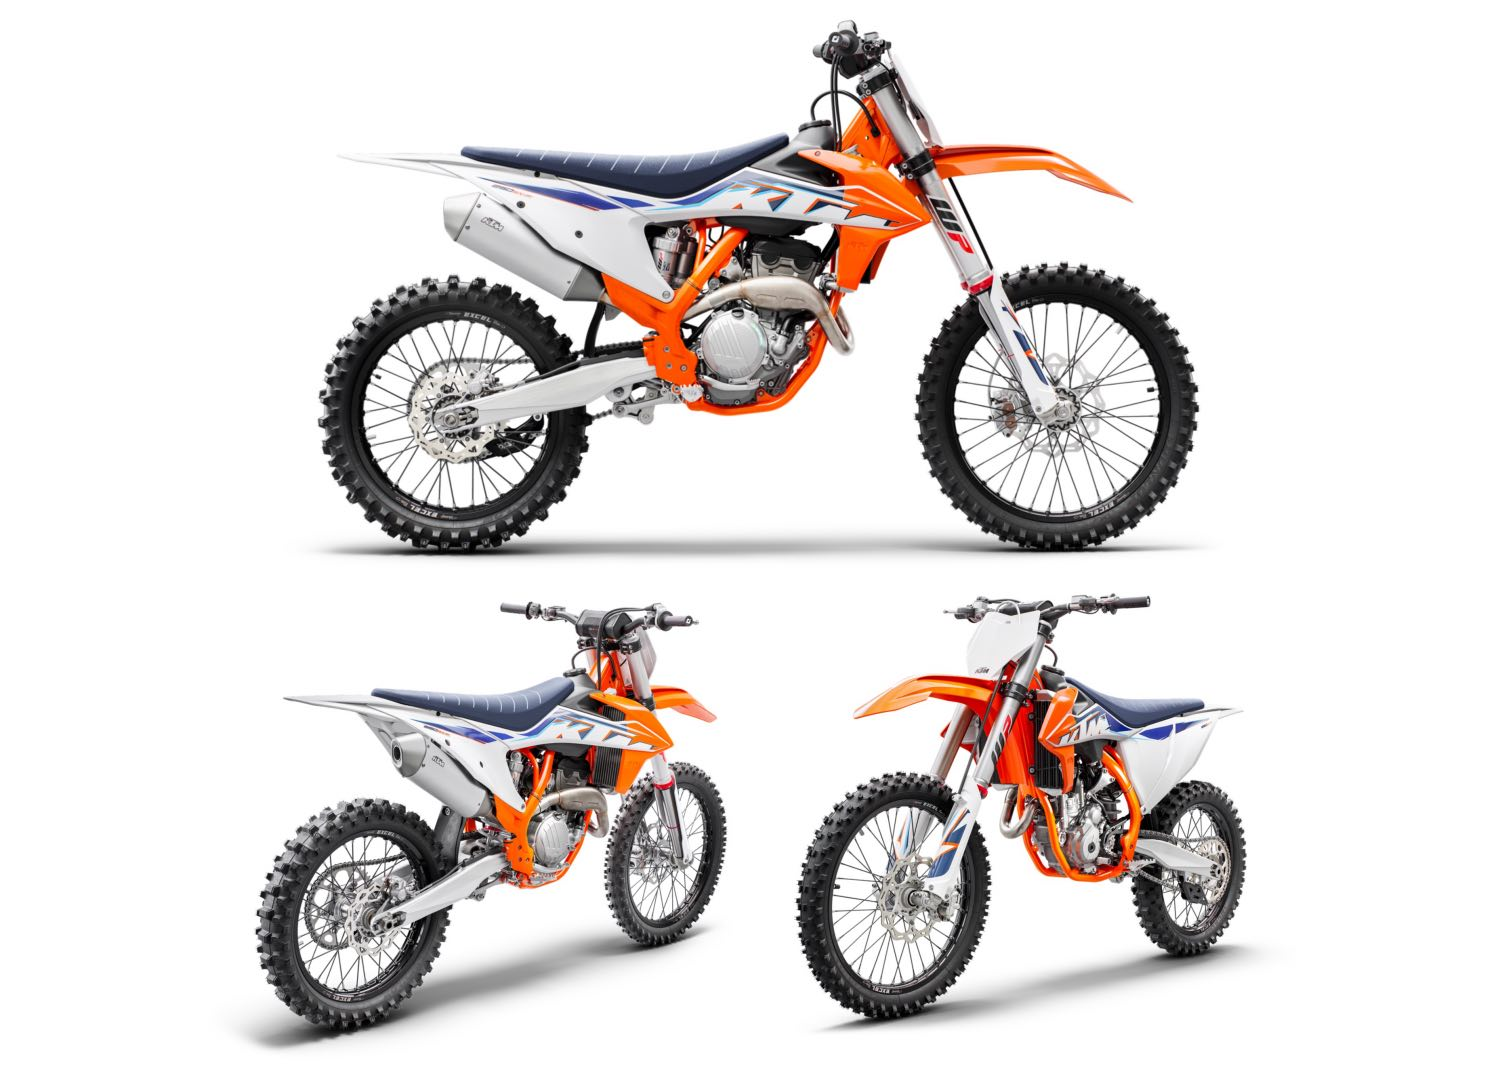 Introducing the 2022 KTM 250 SX-F